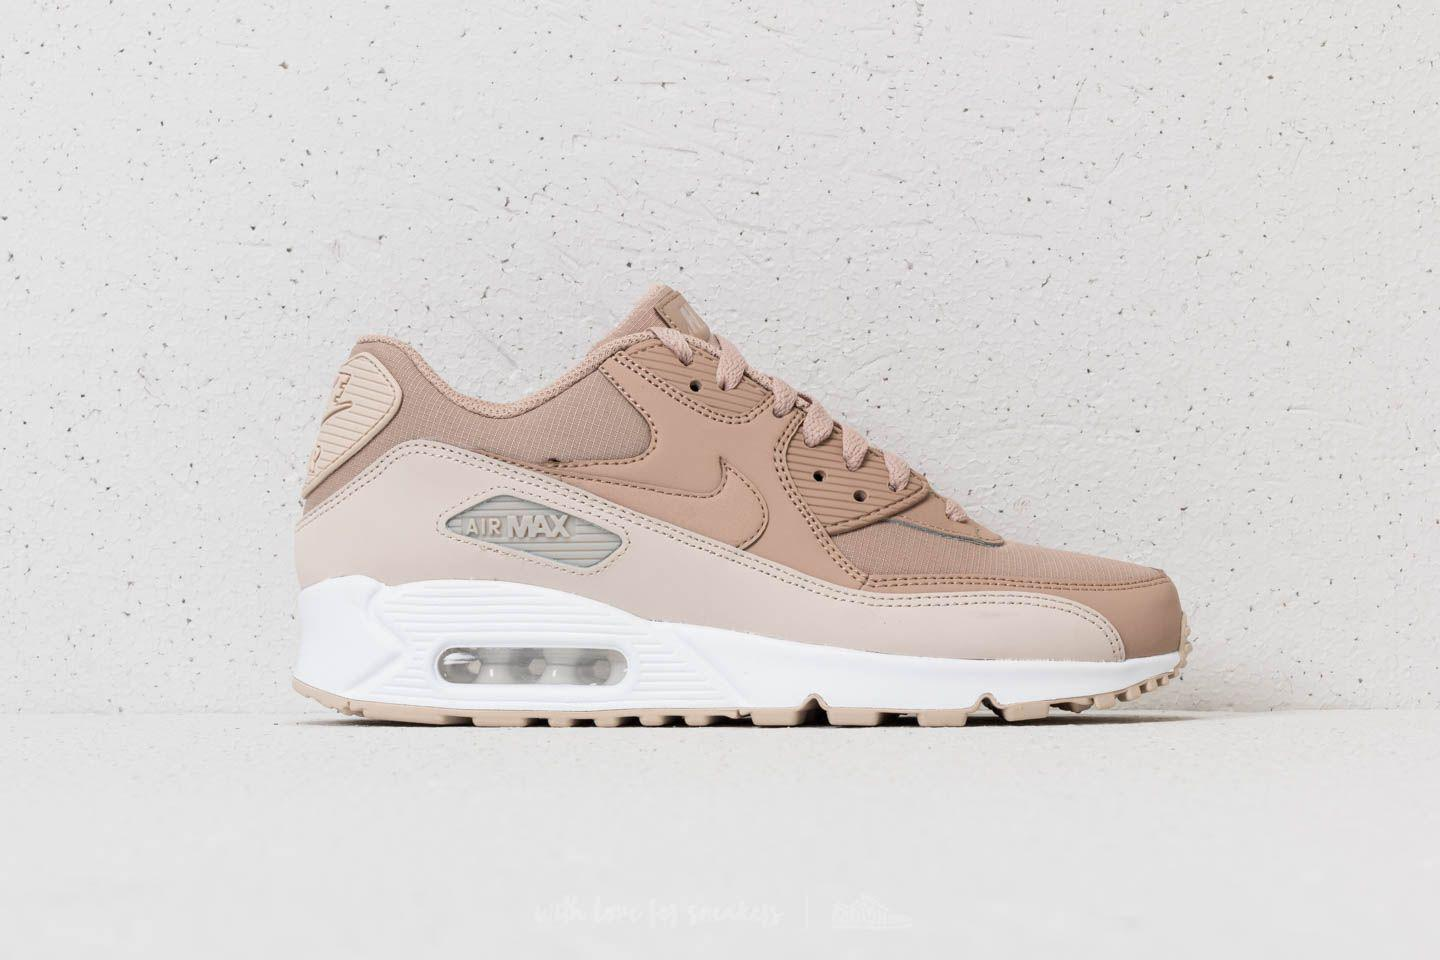 Lyst - Nike Air Max 90 Essential Desert Sand  Sand-white in Natural ... 34d1bcbbe